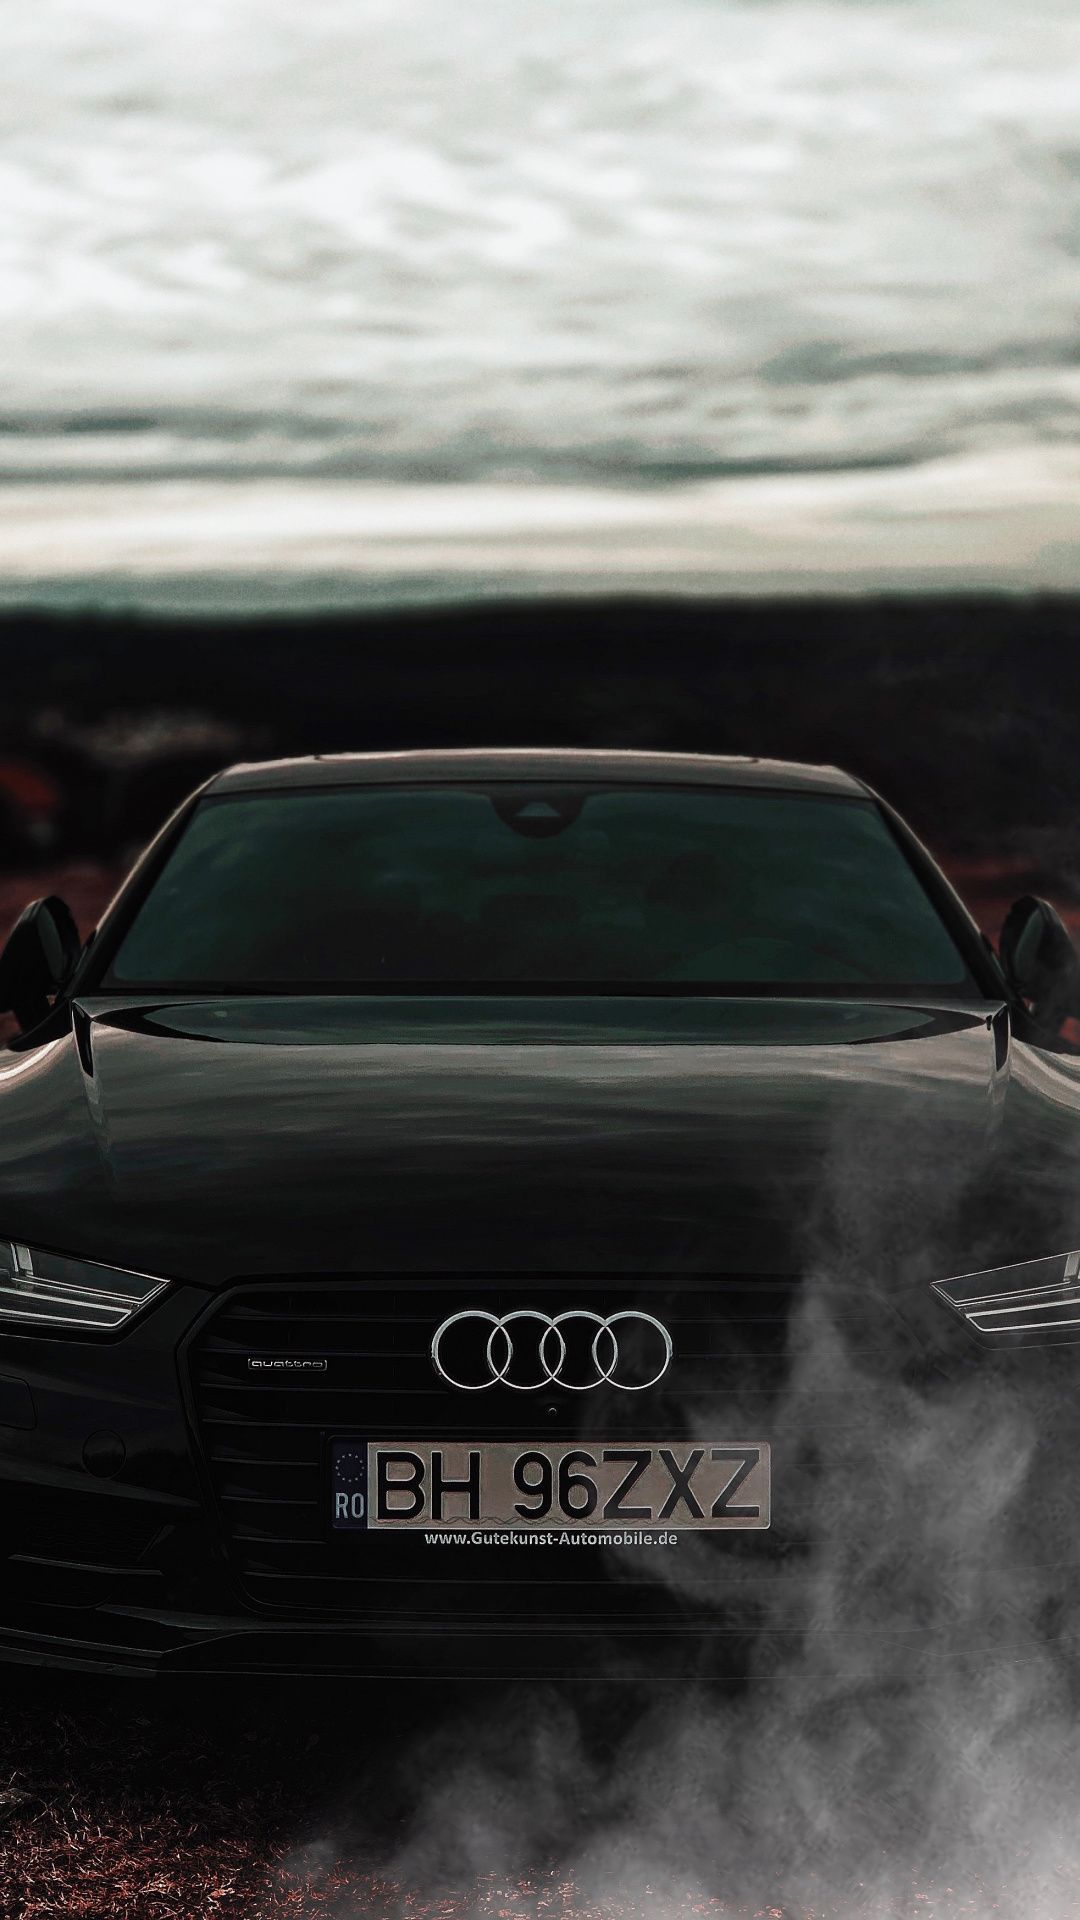 Audi A7 Audi A8 Audi Audi Q5 Wallpaper For Android Full Hd 1080x1920 Cars Background And Image In 2020 Audi A7 Audi A5 Audi Q5